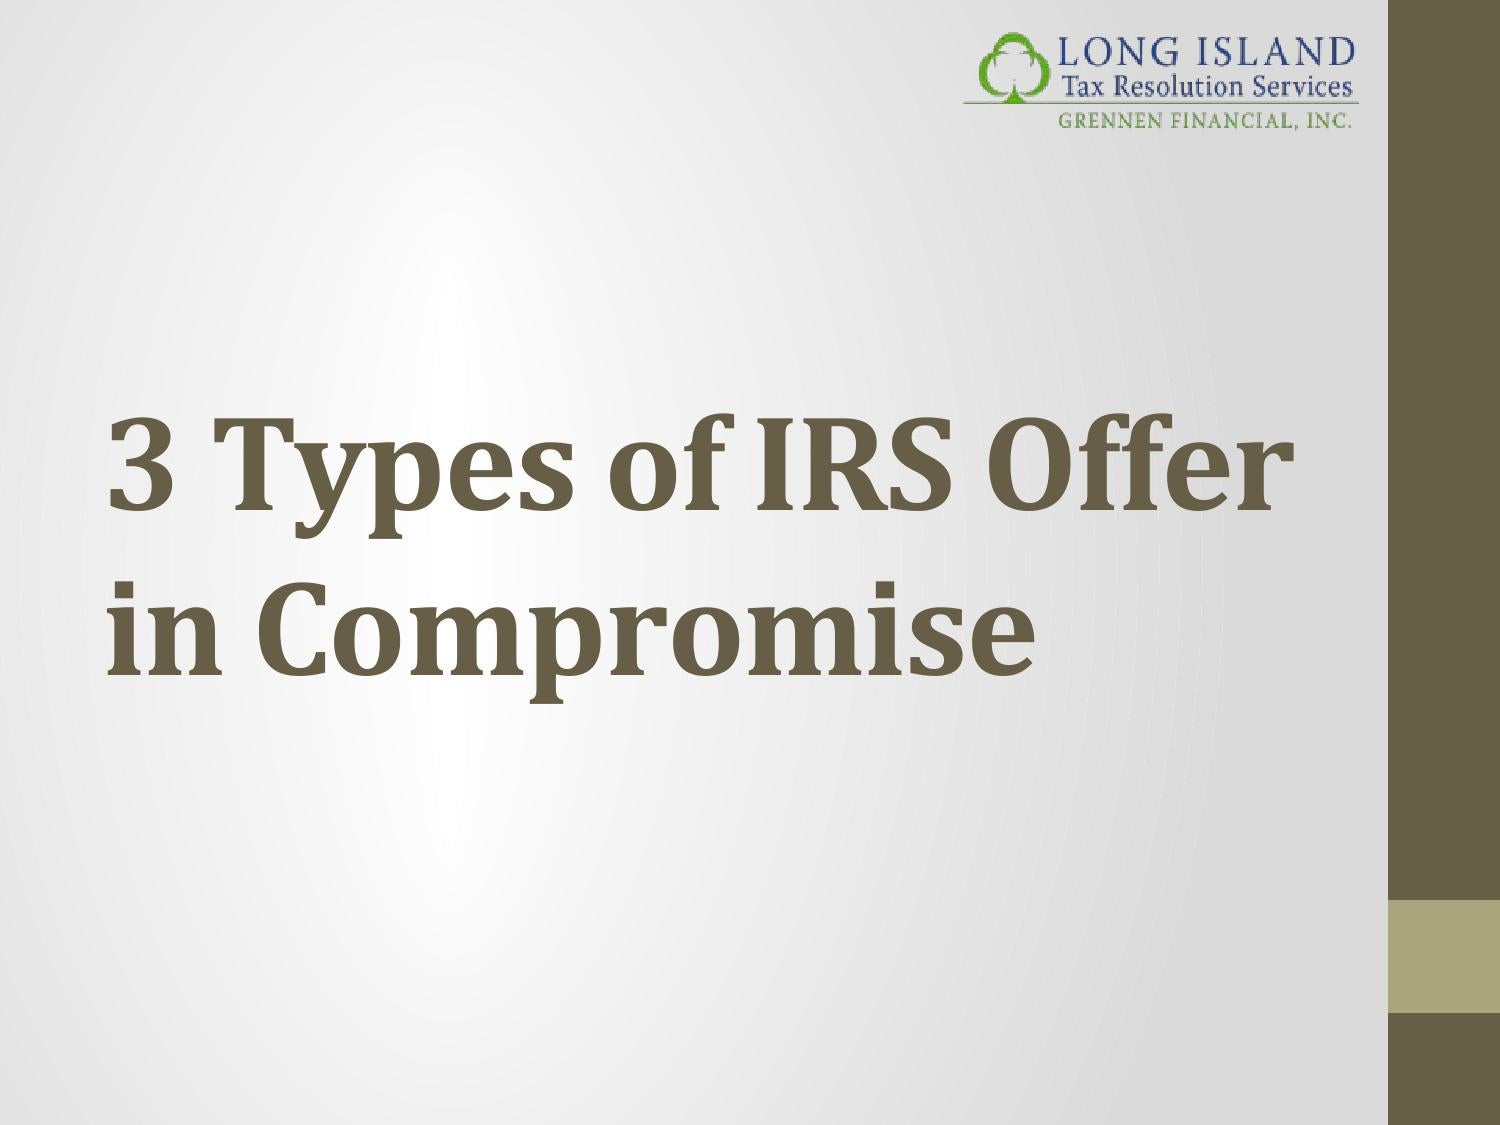 3 Types Of Irs Offer In Compromise And Settlement Your Tax. Security Camera System Installation Service. Internet Speed Test App Penfed Mortgage Rates. Google Web Hosting Plans Ucla Masters Program. Independent Living Atlanta Ga. Freelancer Web Developer Business Voip Canada. Foundation Engineering Company. Occupational Health And Safety Issues. Sap Project Management Certification